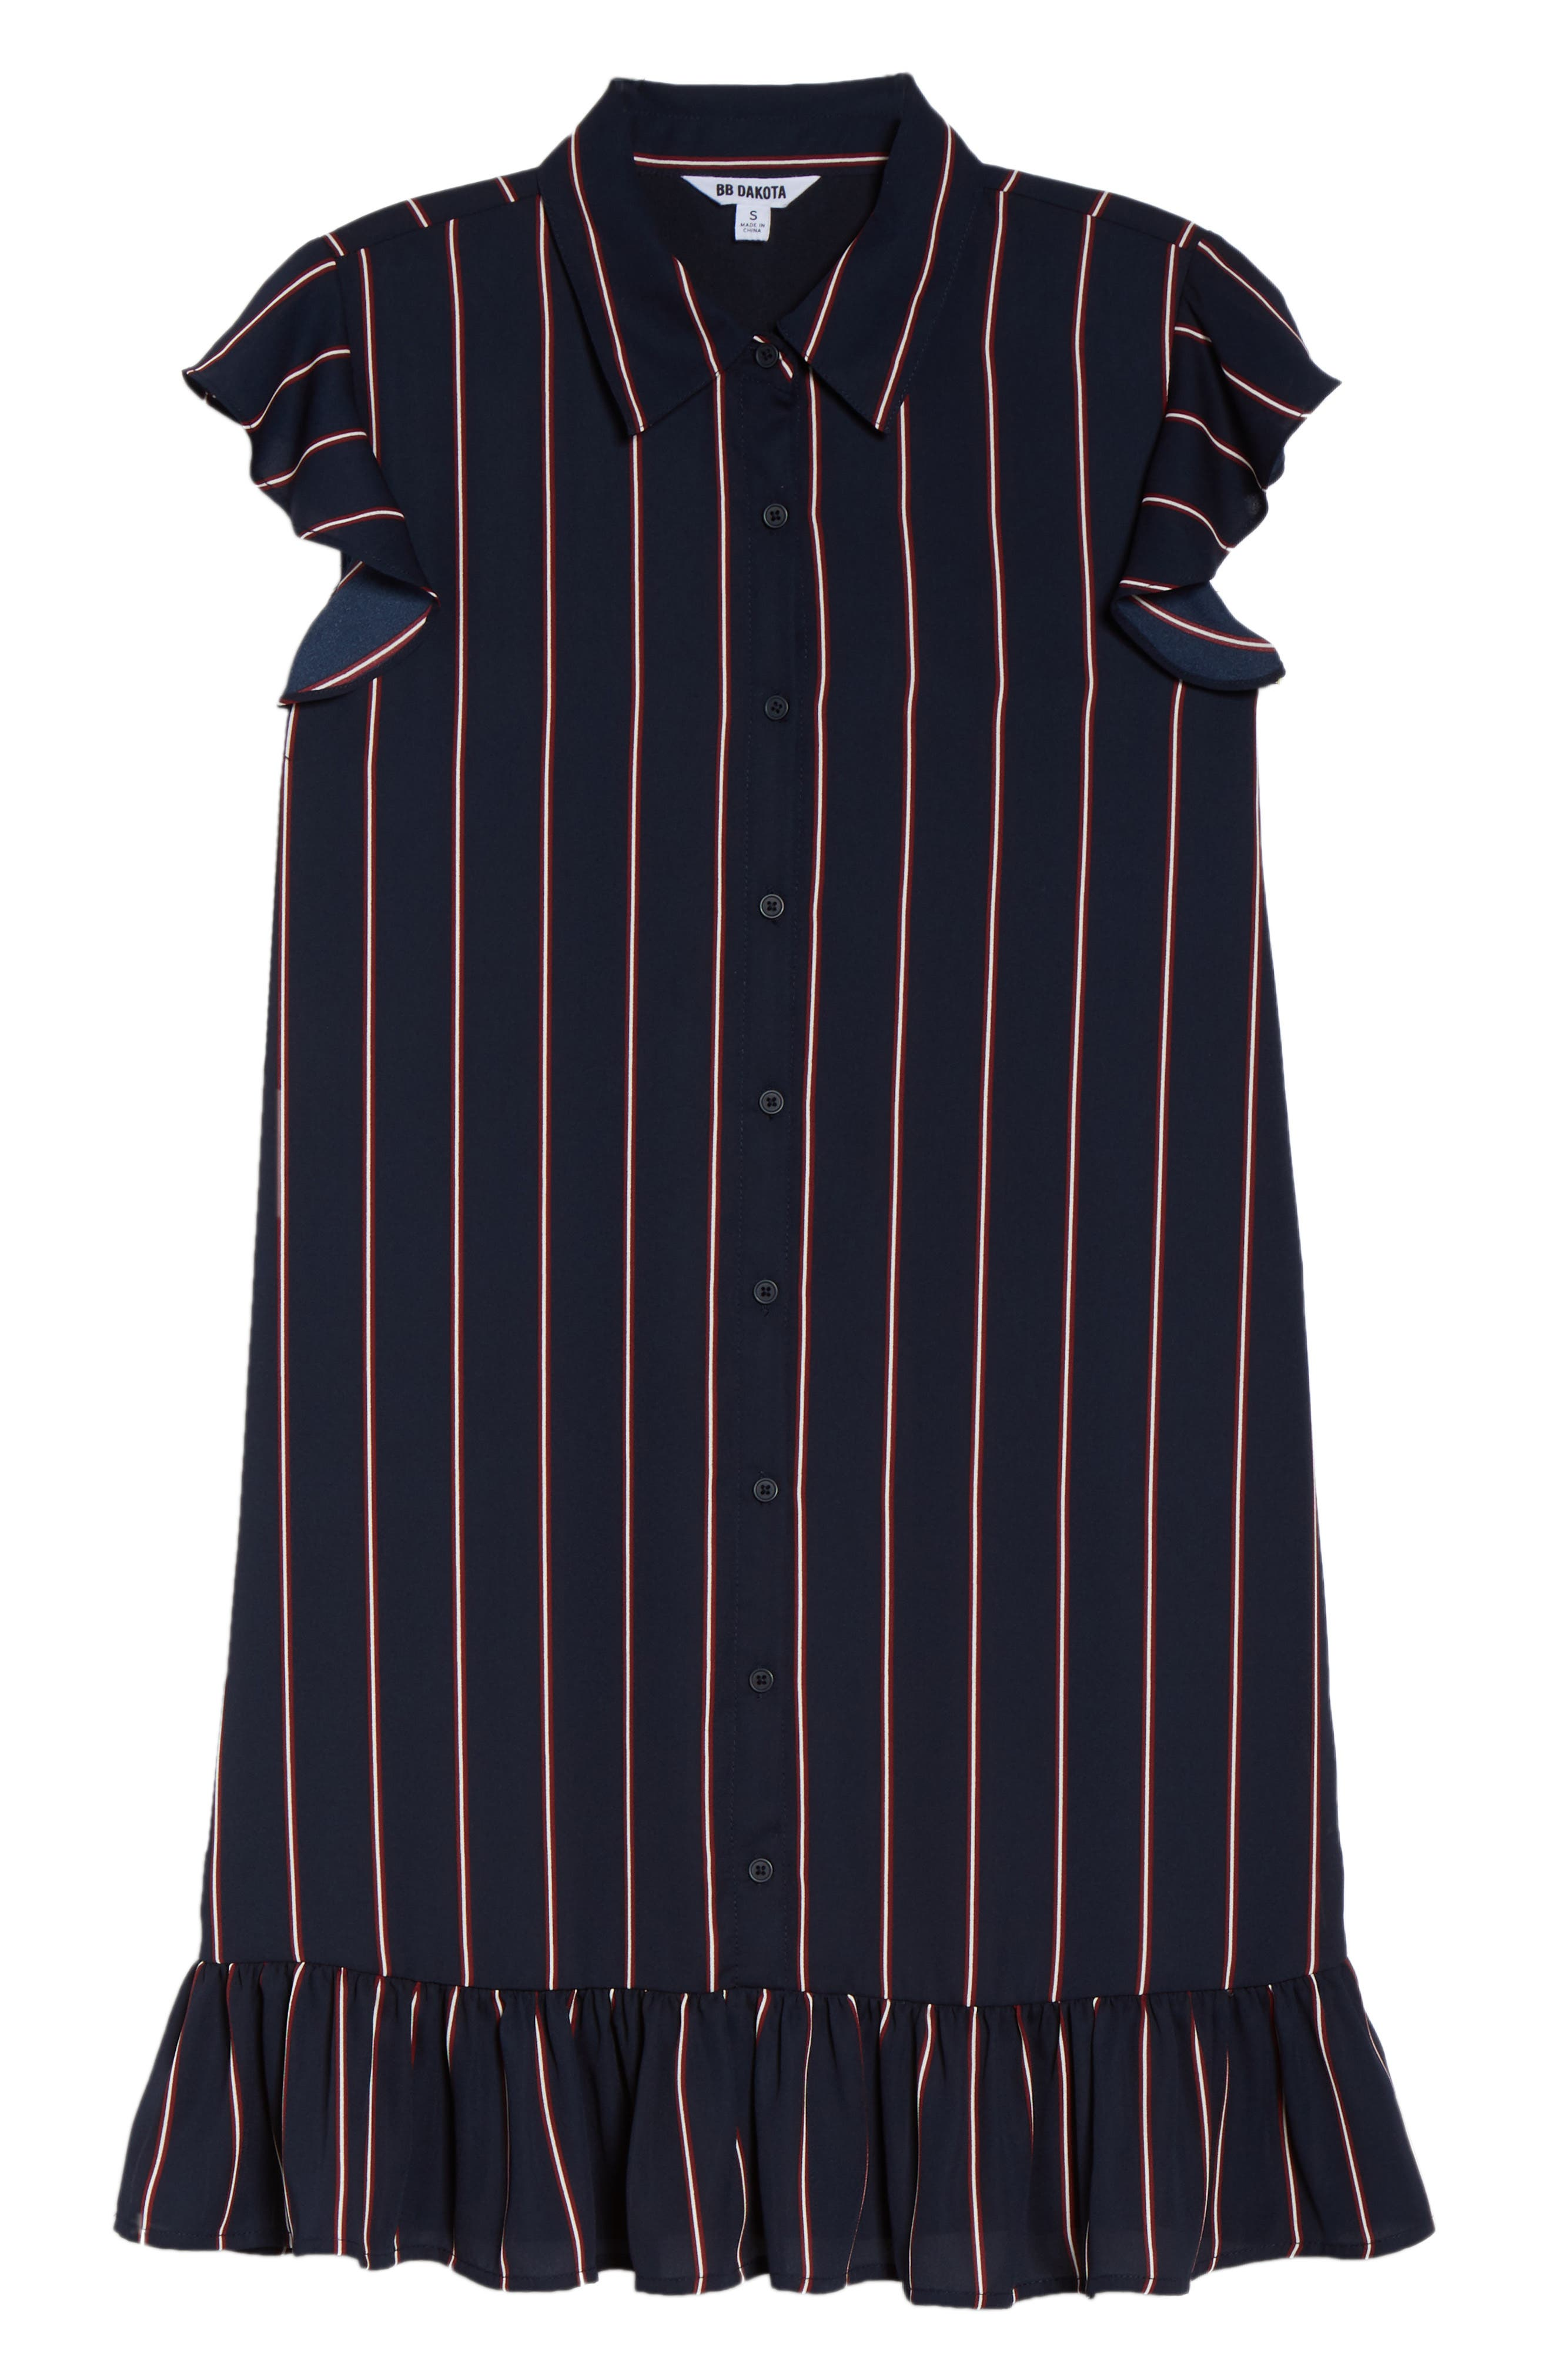 American Pie Stripe Shirtdress,                             Alternate thumbnail 7, color,                             MIDNIGHT SKY